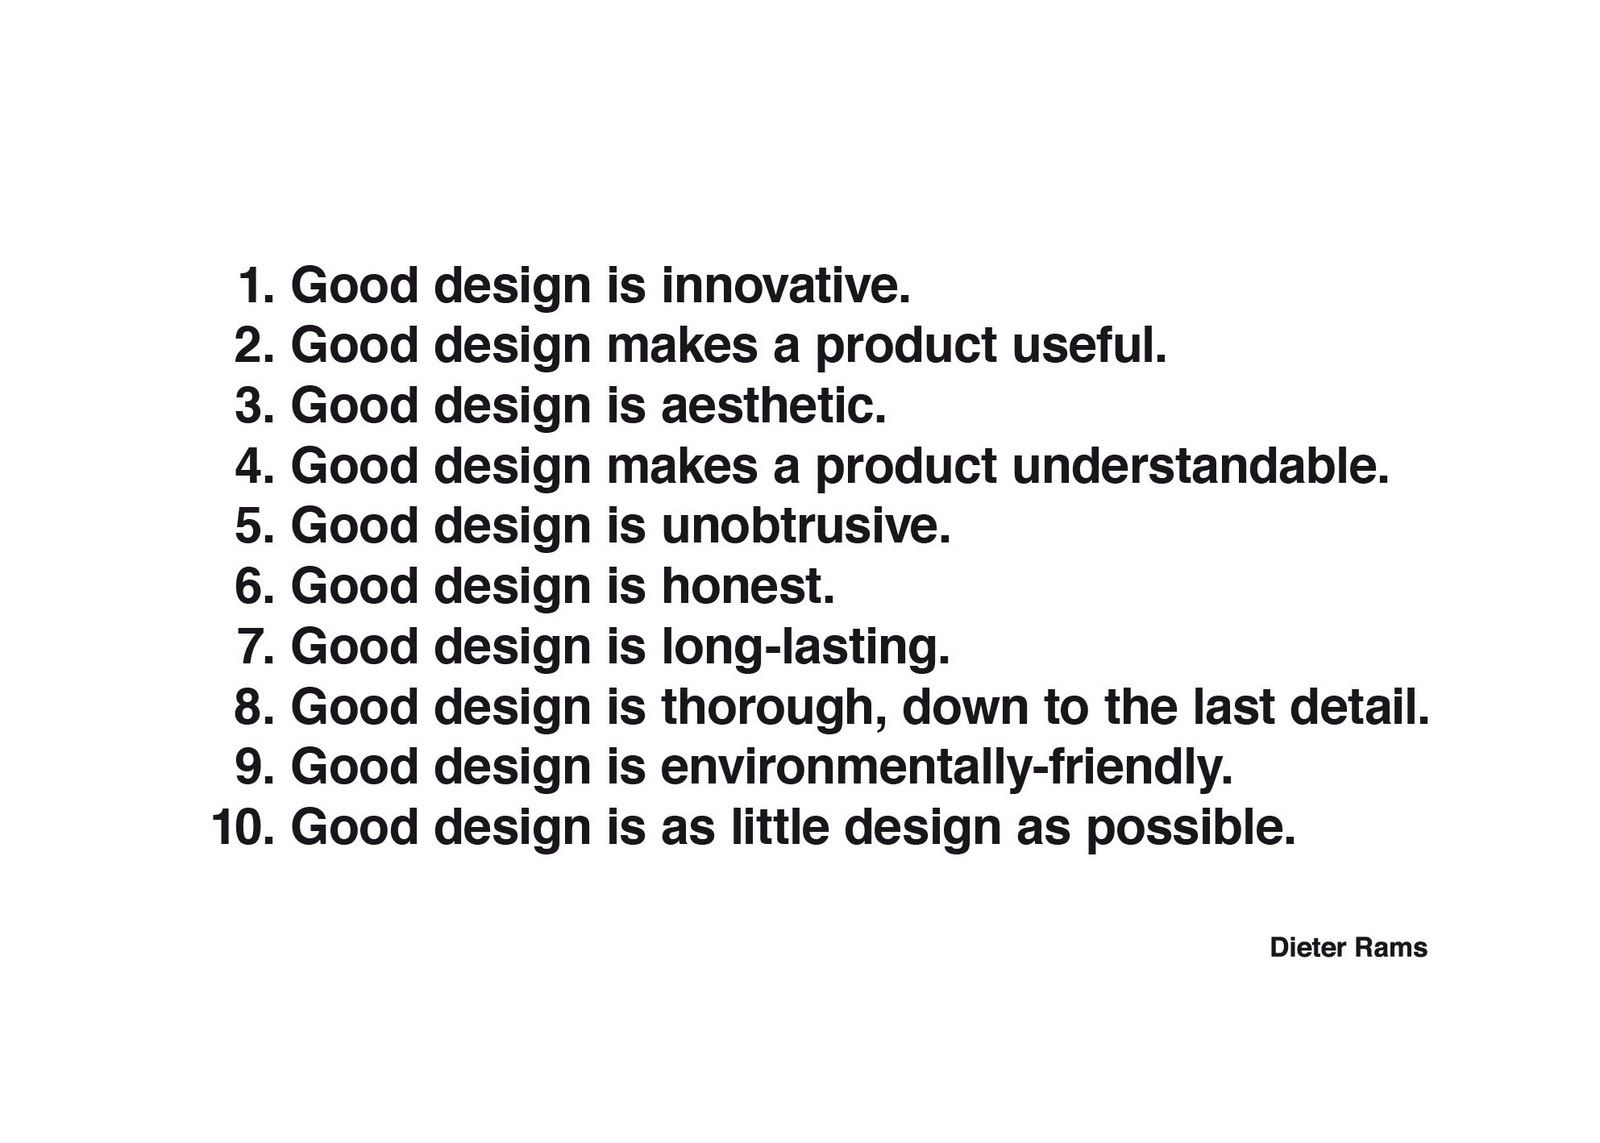 10 principles of good design by dieter rams quotes that 10 principles of good design by dieter rams